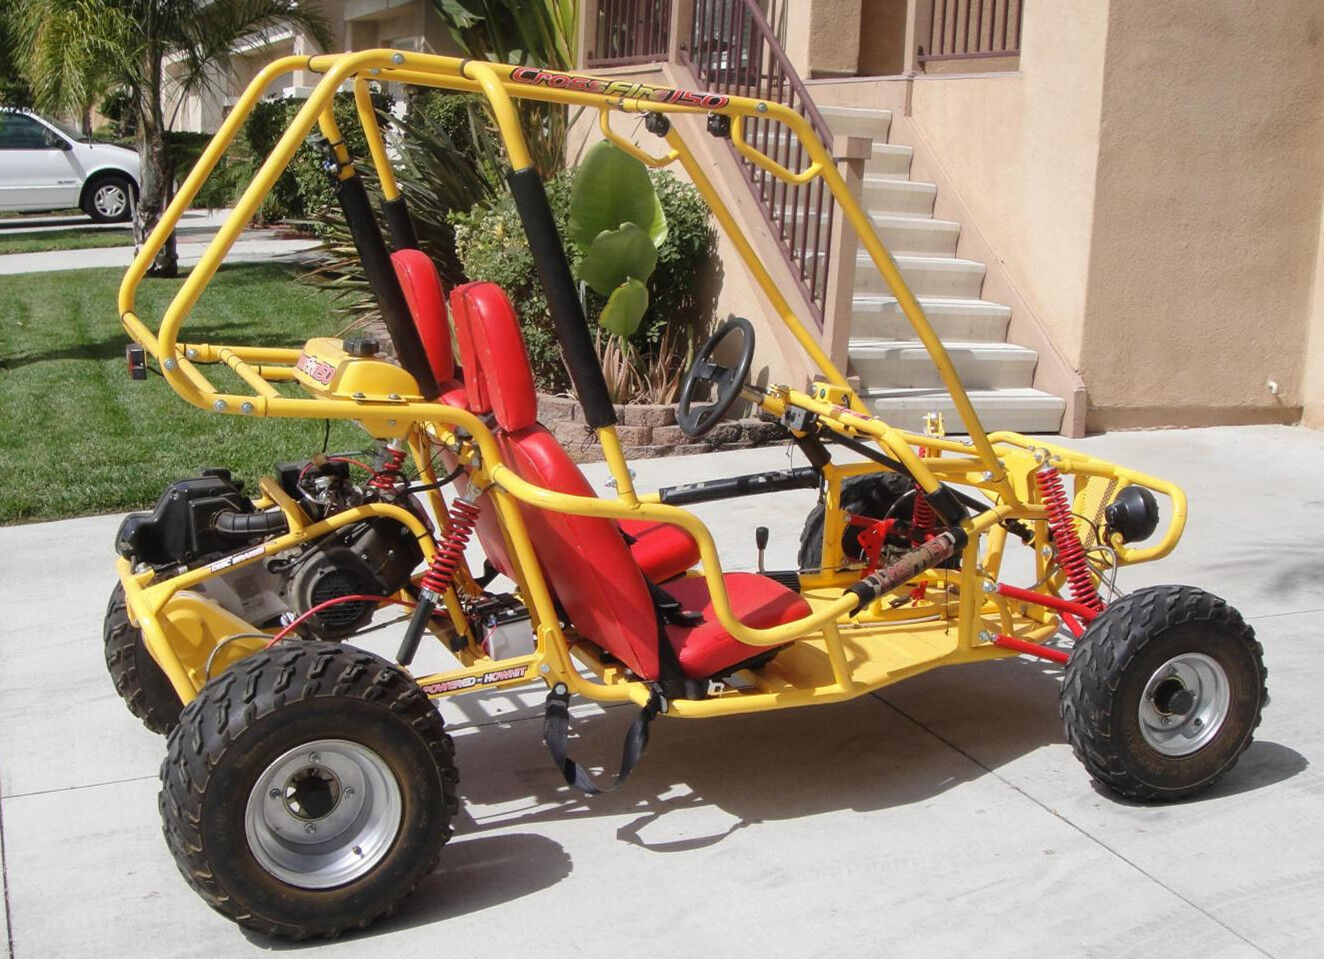 Crossfire 150 Dune Buggy For Sale 150r Go Kart Wiring Harness 1 Of 2free Shipping Throttle Cable Tomberlin 150cc